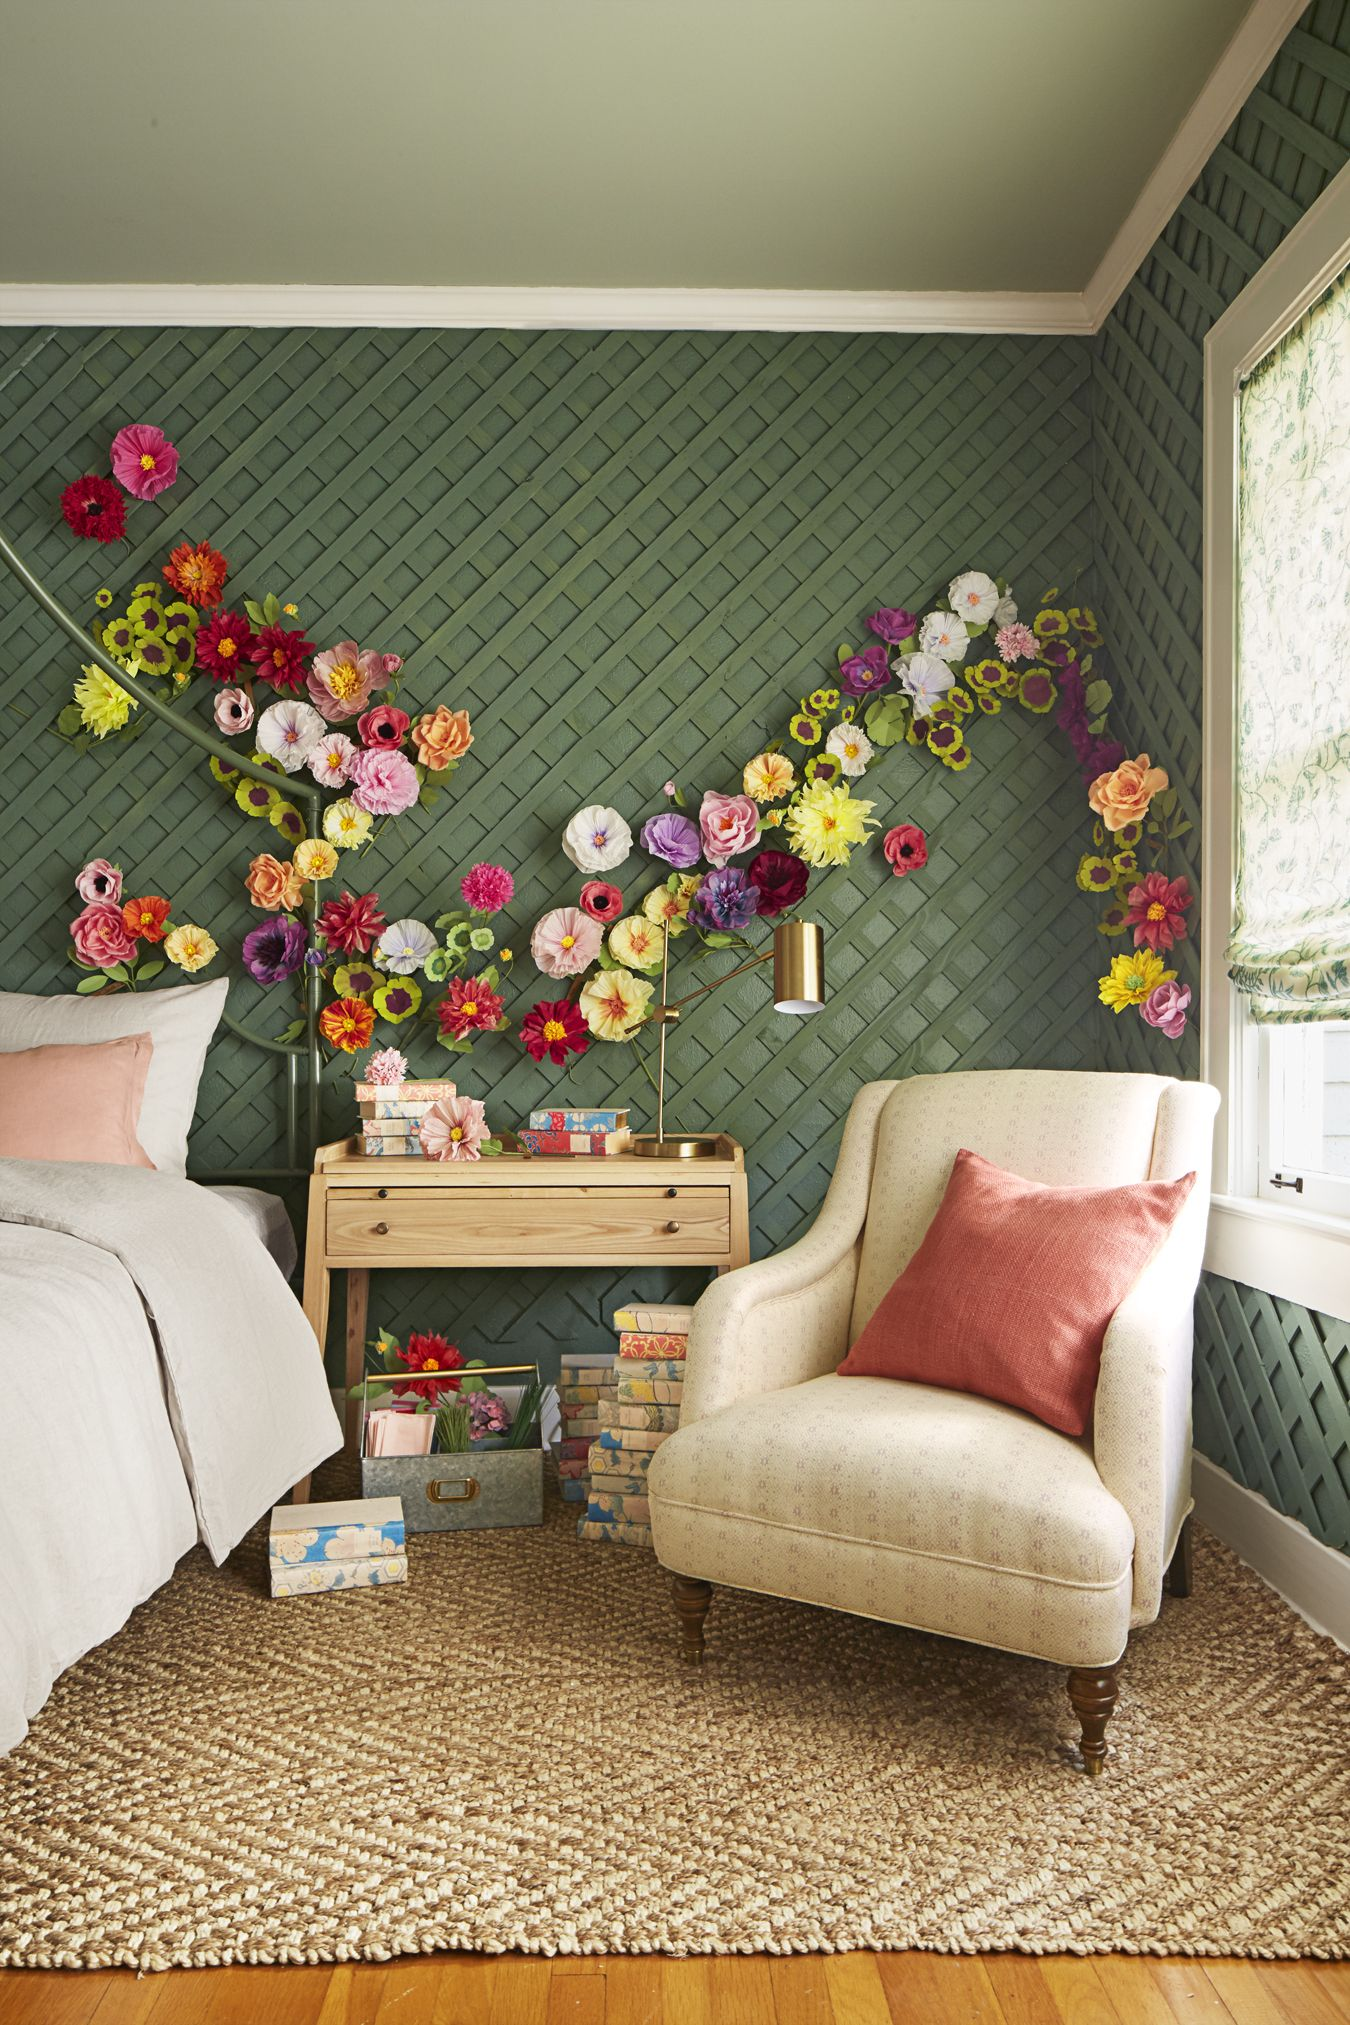 Uncategorized Whimsical Decorating Ideas 29 design ideas inspired by classic country music songs bedrooms thanks to pretty paper petals and a garden fresh palette this whimsical bedroom blooms songsroom decorating ideashome